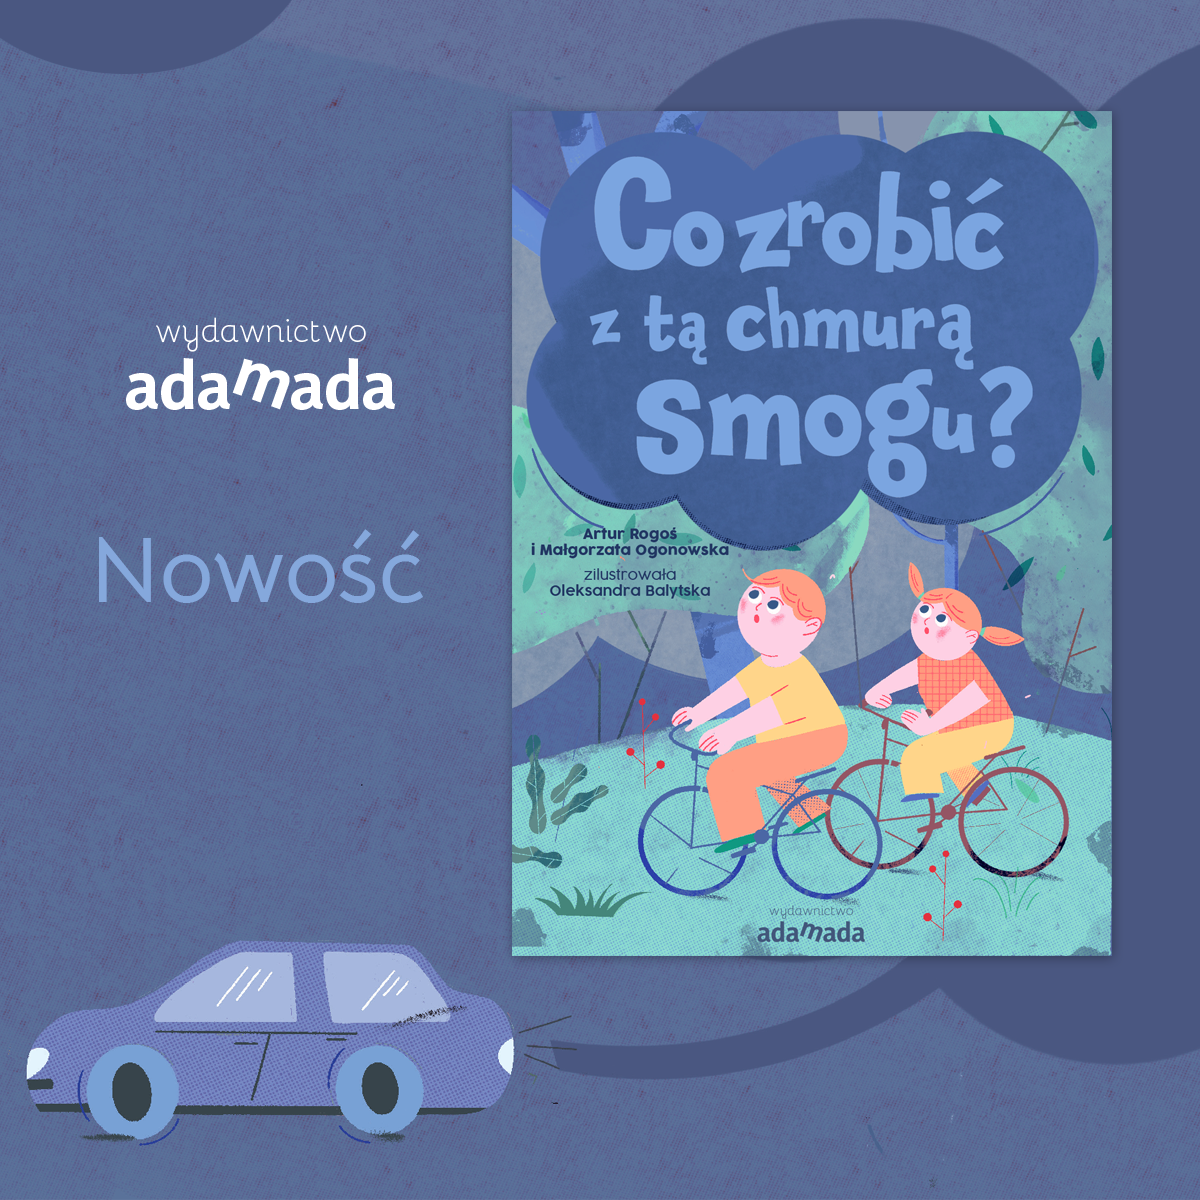 Smog_Nowosc.png